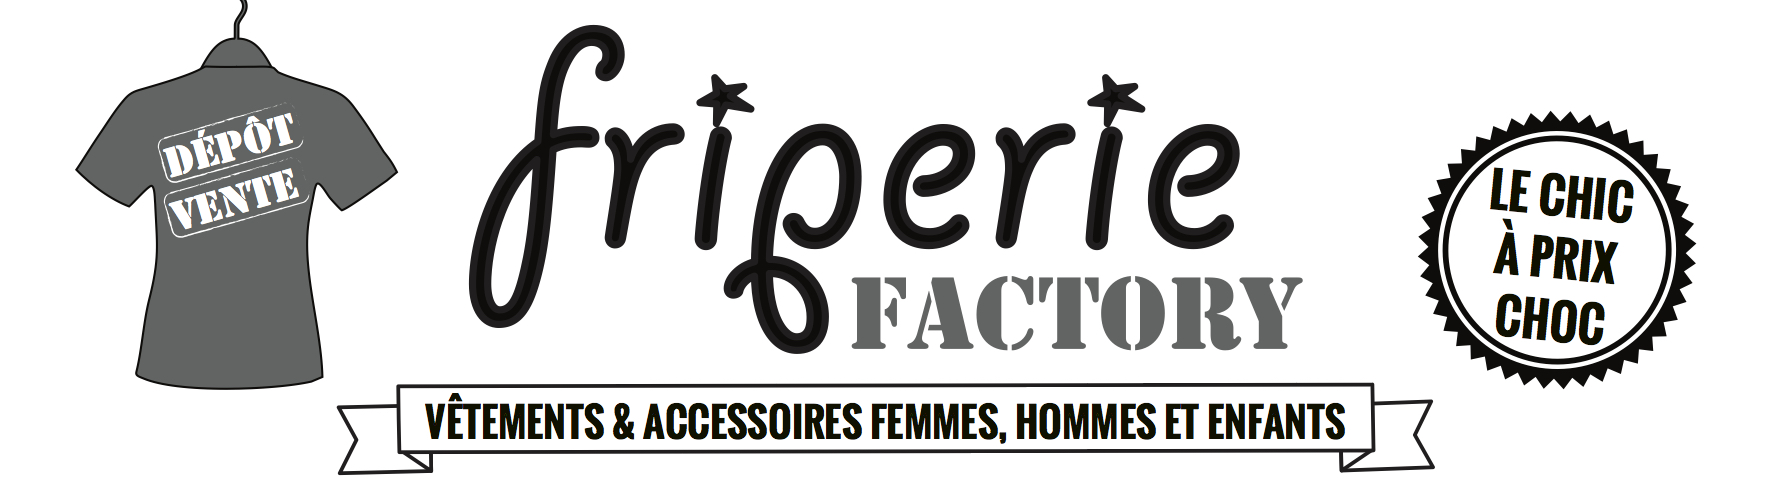 Enseigne Friperie Factory def